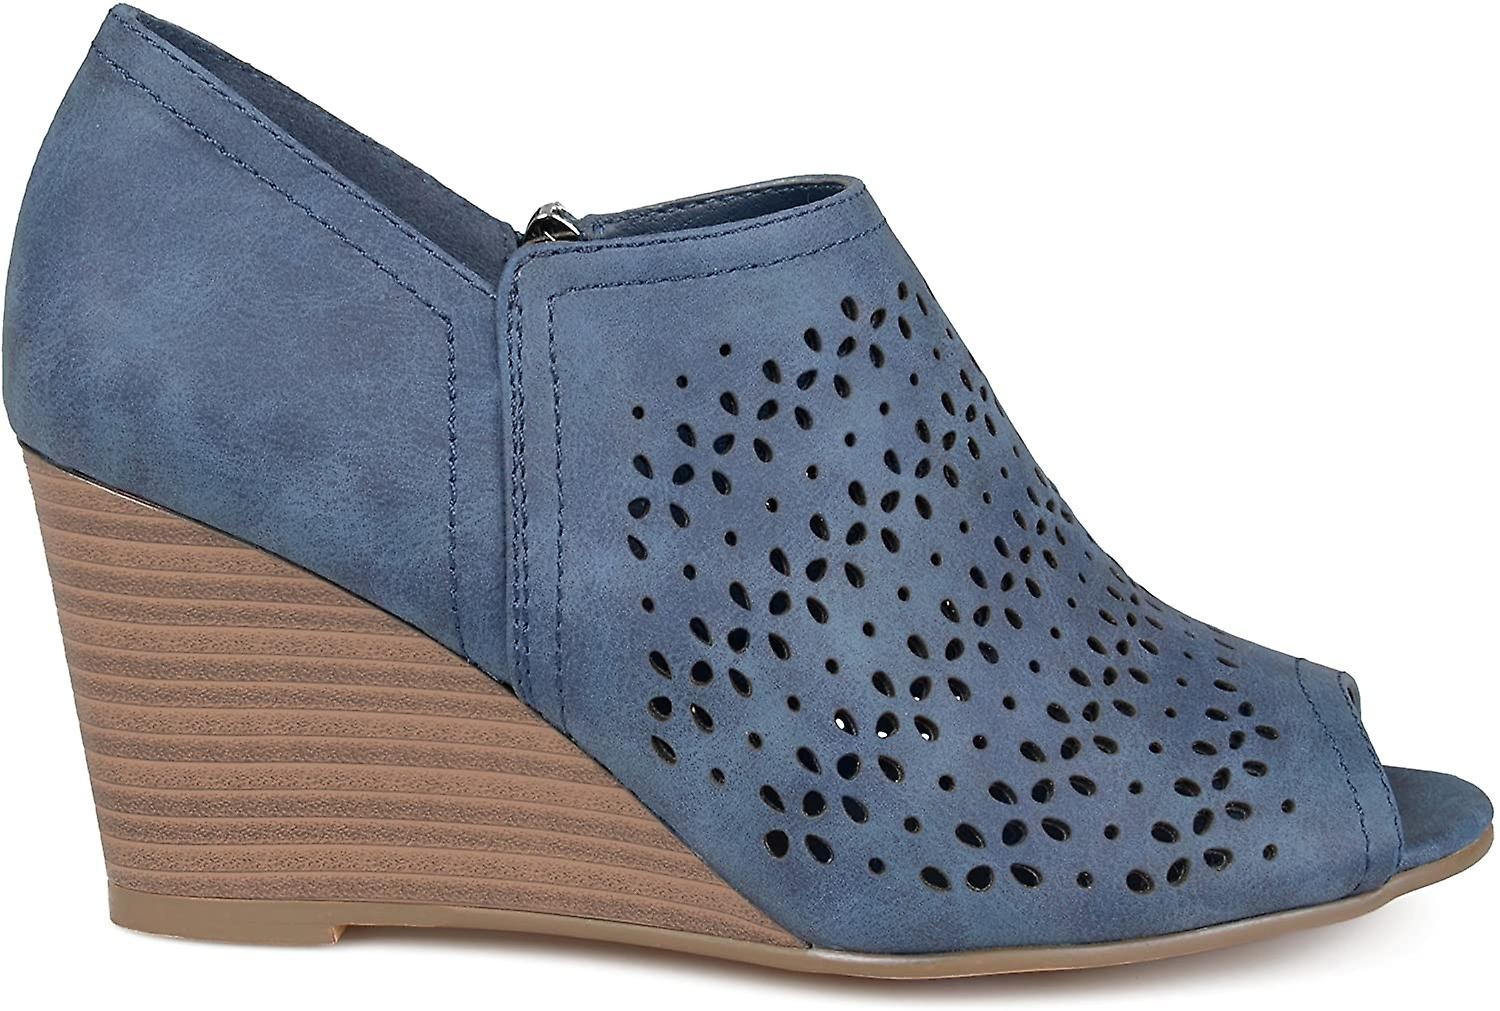 Brinley Co. Womens Faux Leather Peep-Toe Laser Cut Wedges hJNEh